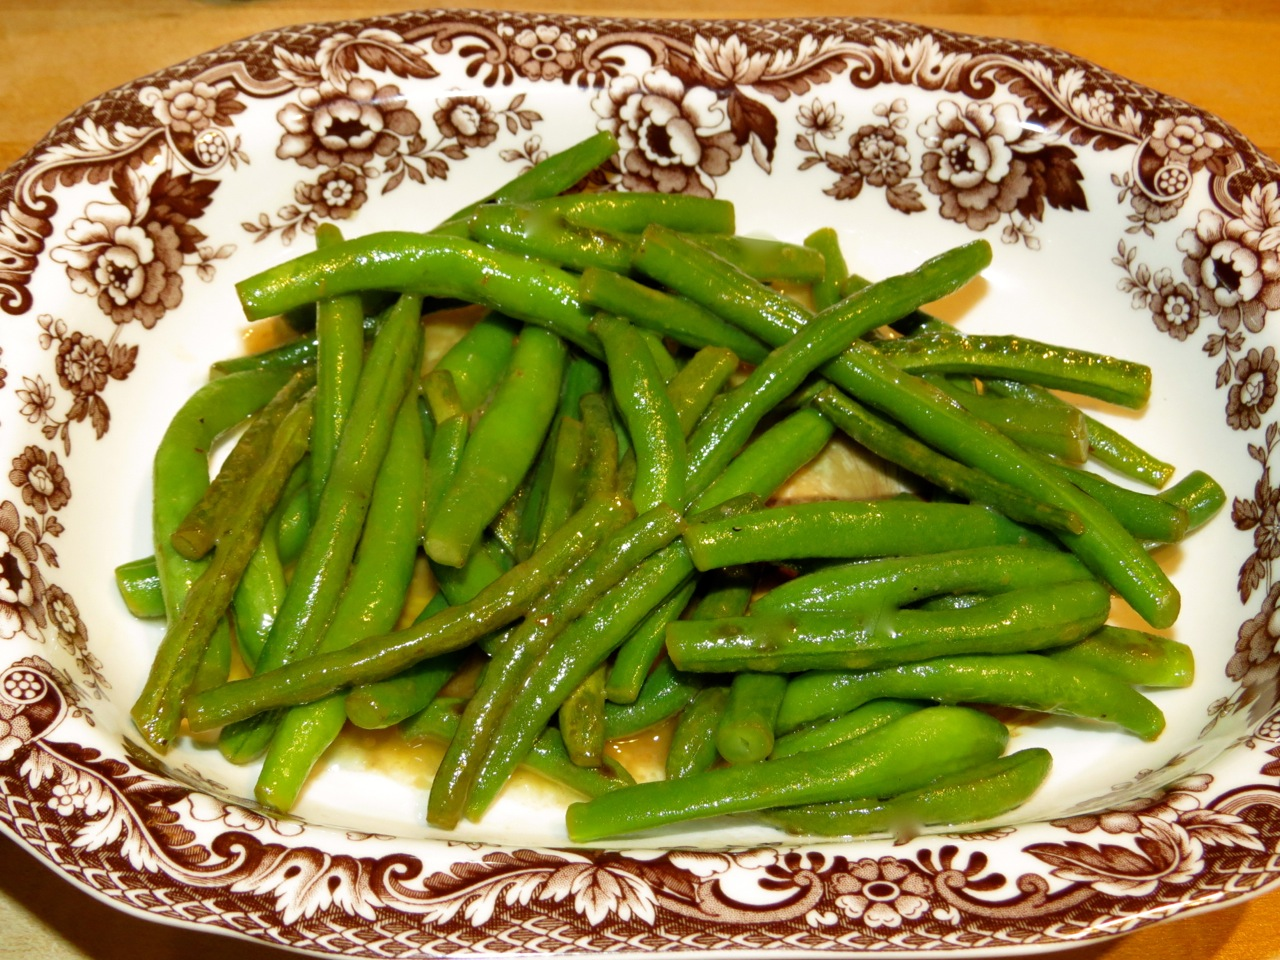 Hotel Green Lemon Julia Childs Haricots Verts A La Maitre Dhotel Buttered Green